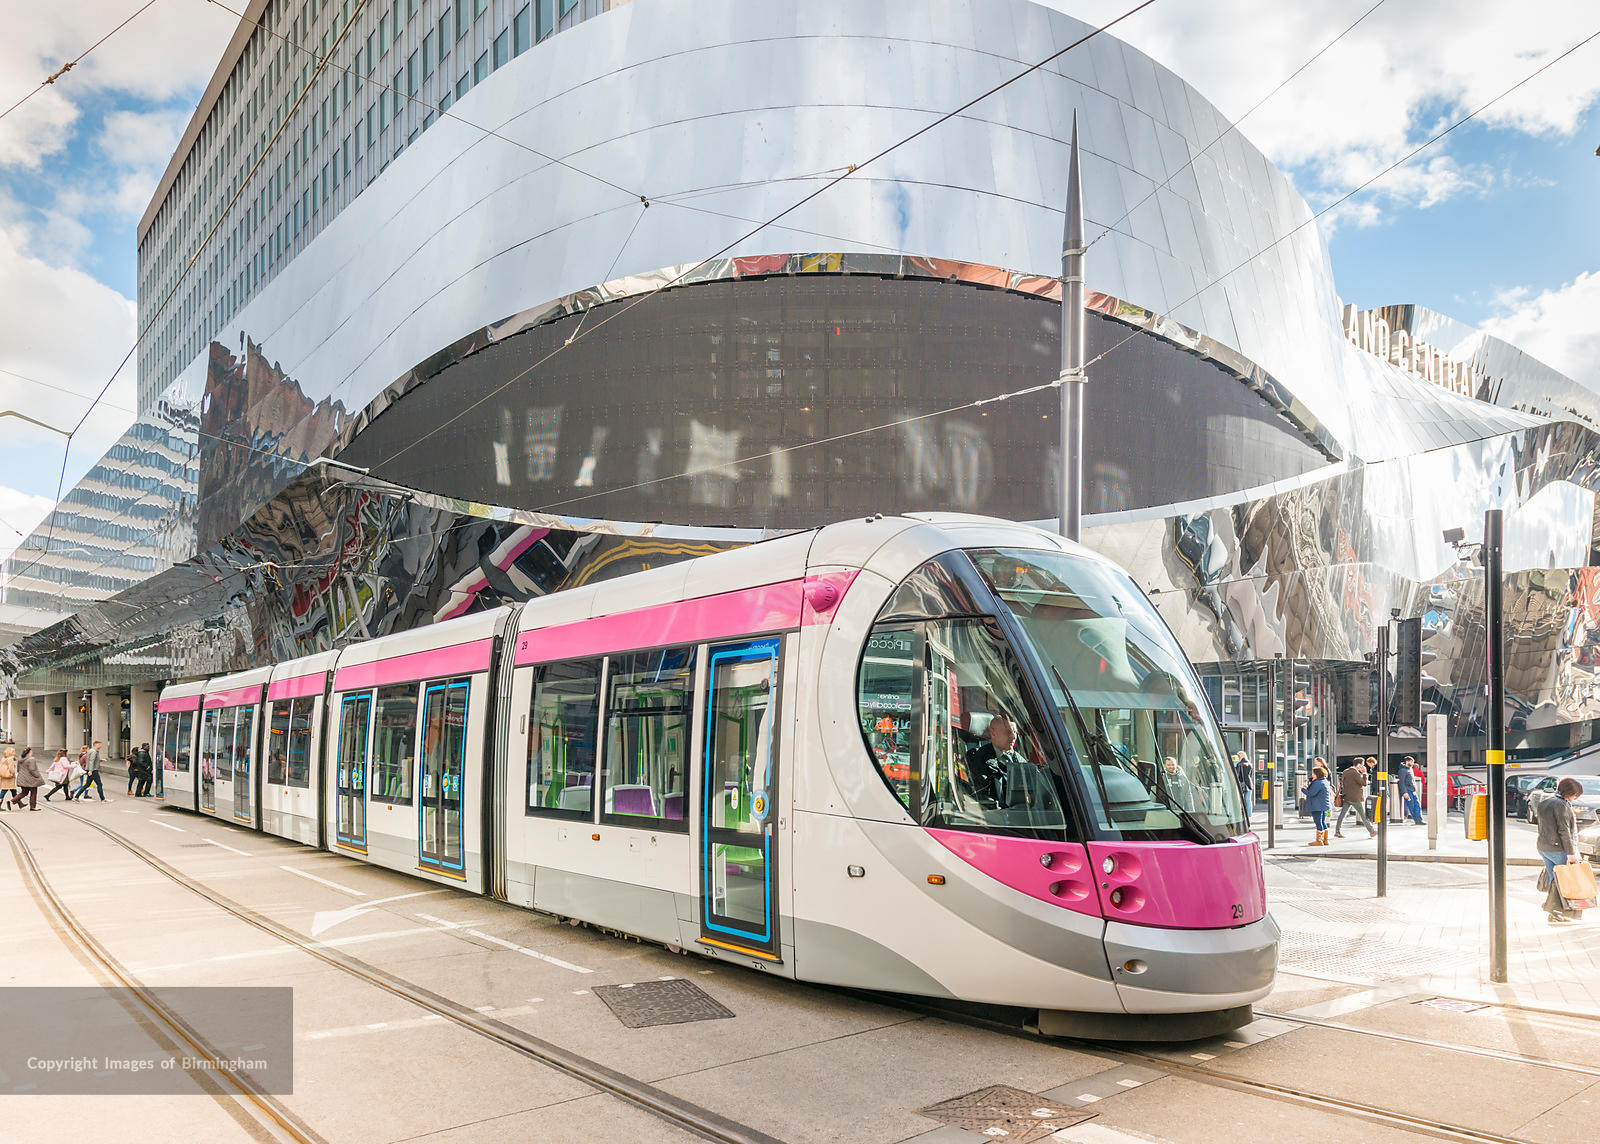 A tram in Birmingham City Centre alongside New Street train station, England.